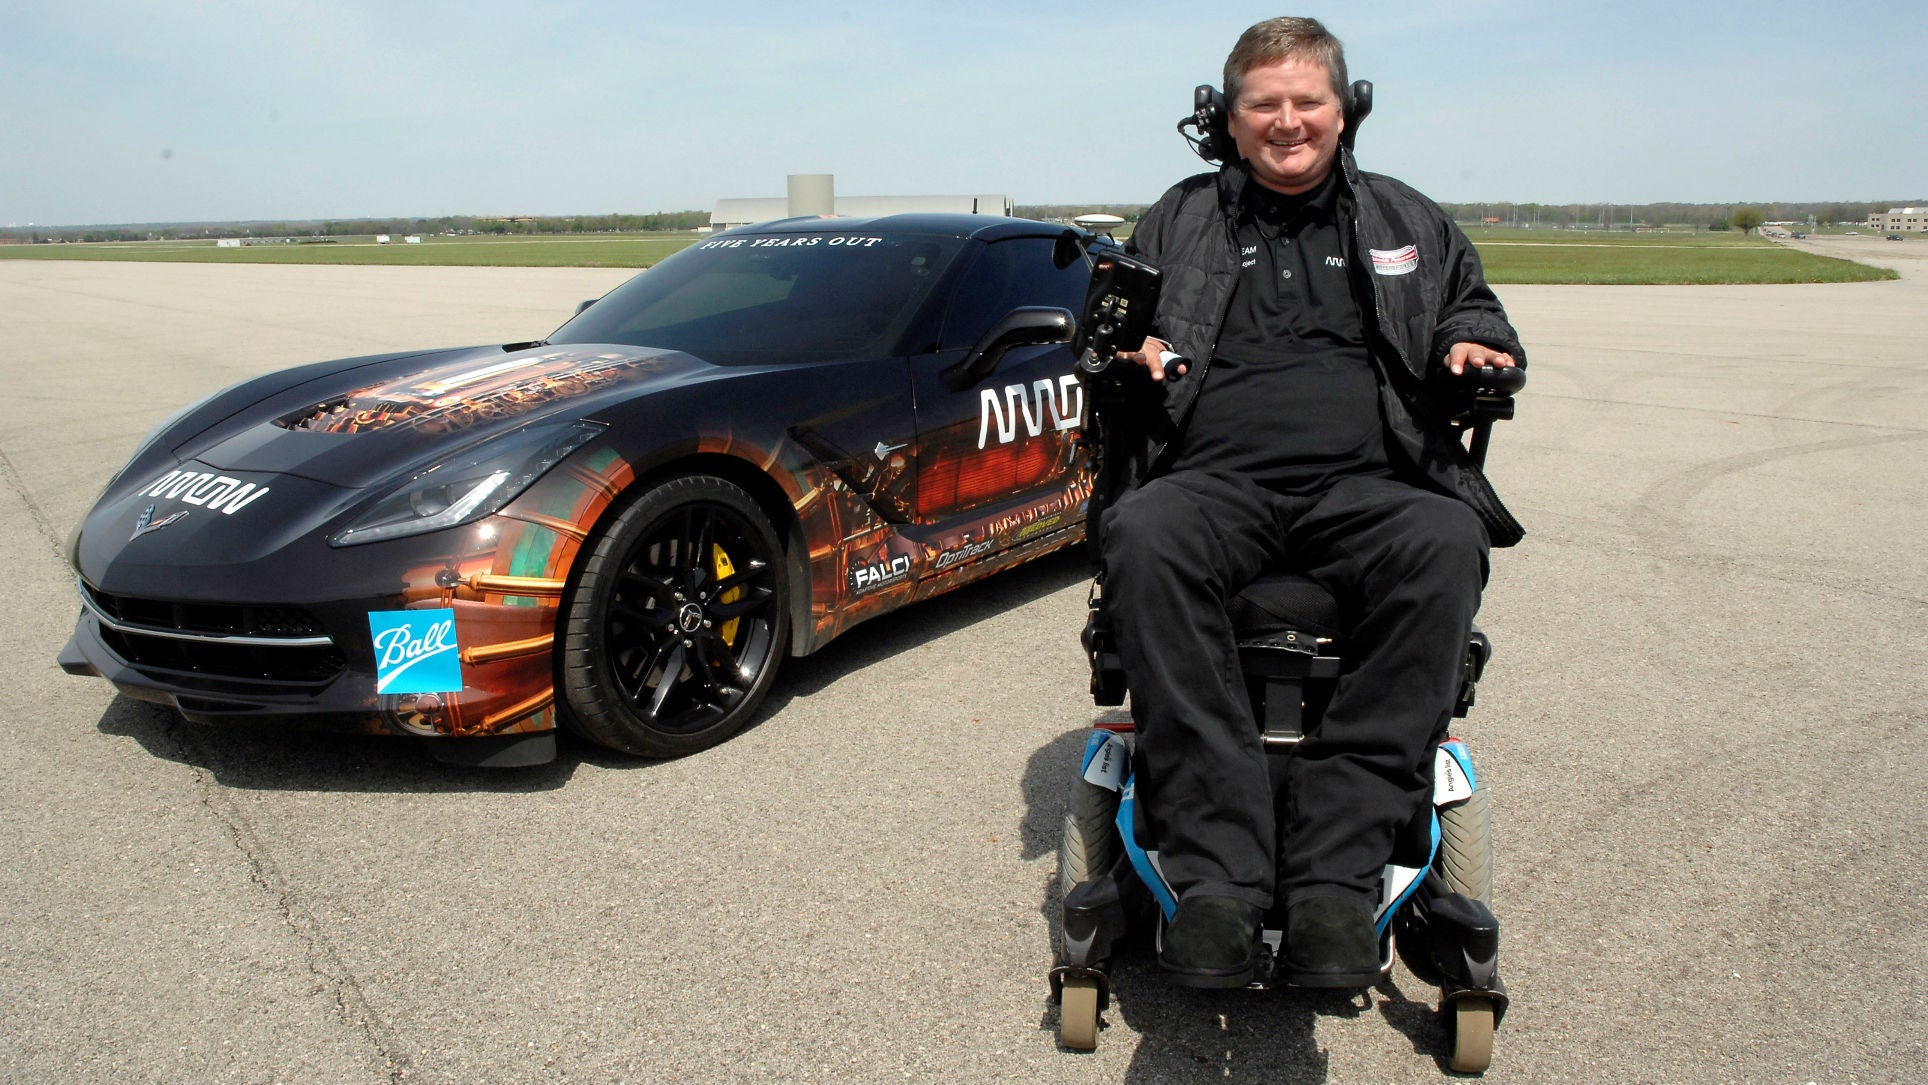 Monster Machines: Quadriplegic Racer Will Steer Stingray With His Head At Indy 500